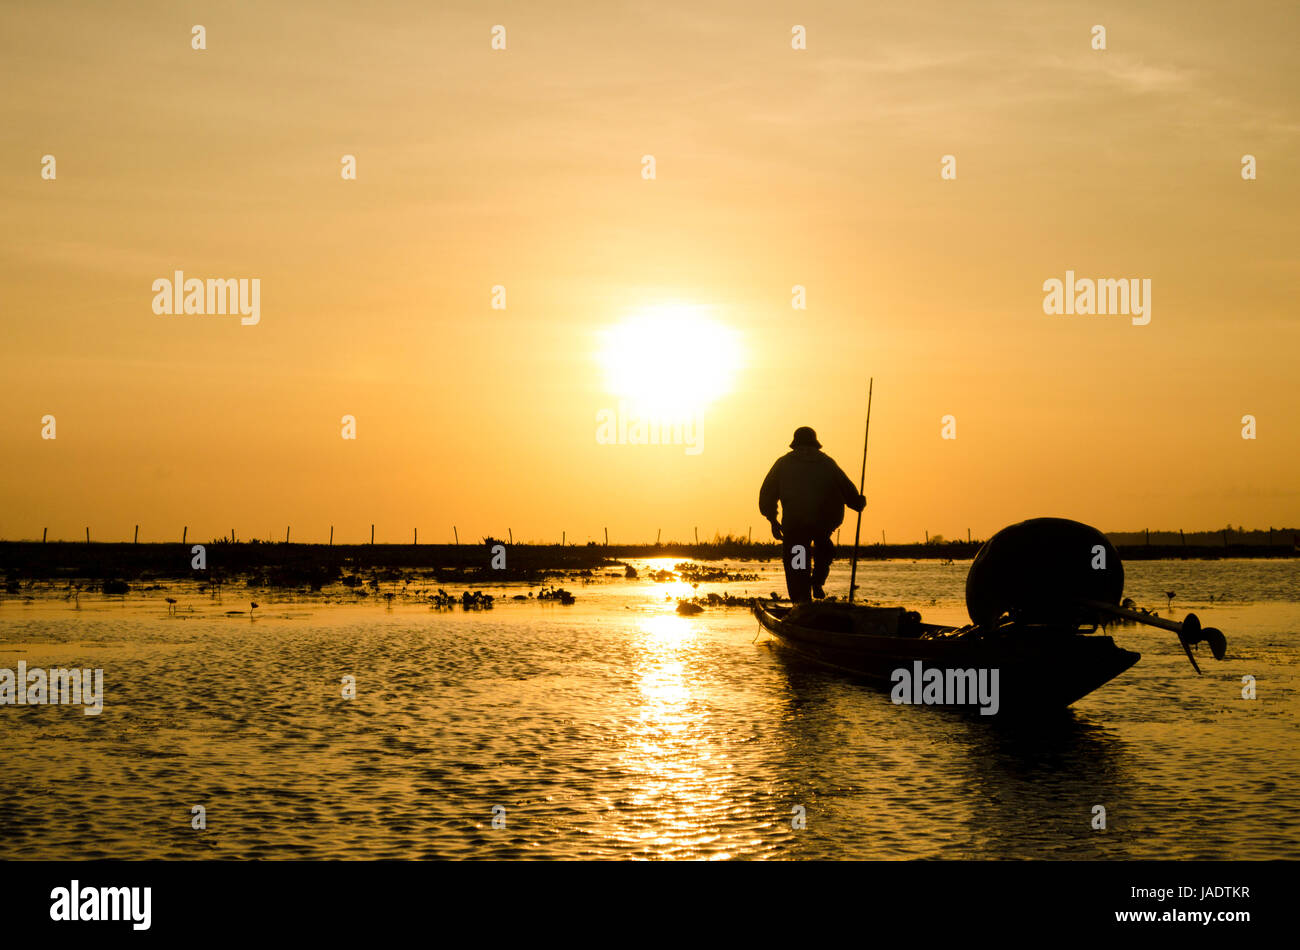 Fisherman going out on a small fishing boat in the early morning to put out fishing net in the local reservoir down - Stock Image